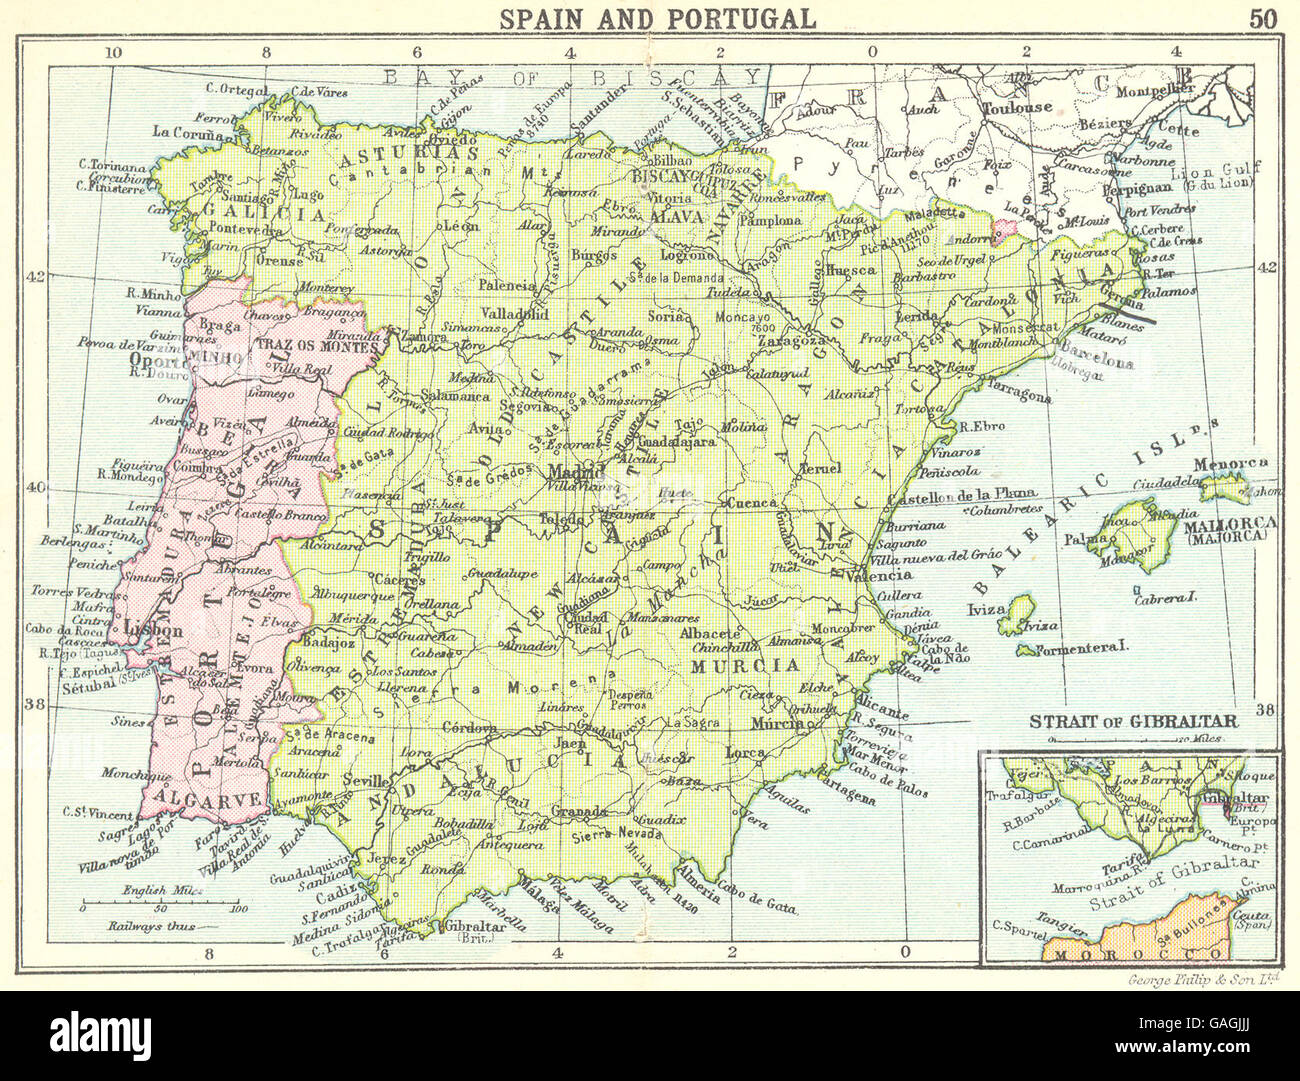 Small Map Of Spain.Spain Spain And Portugal Inset Map Of Strait Of Gibraltar Small